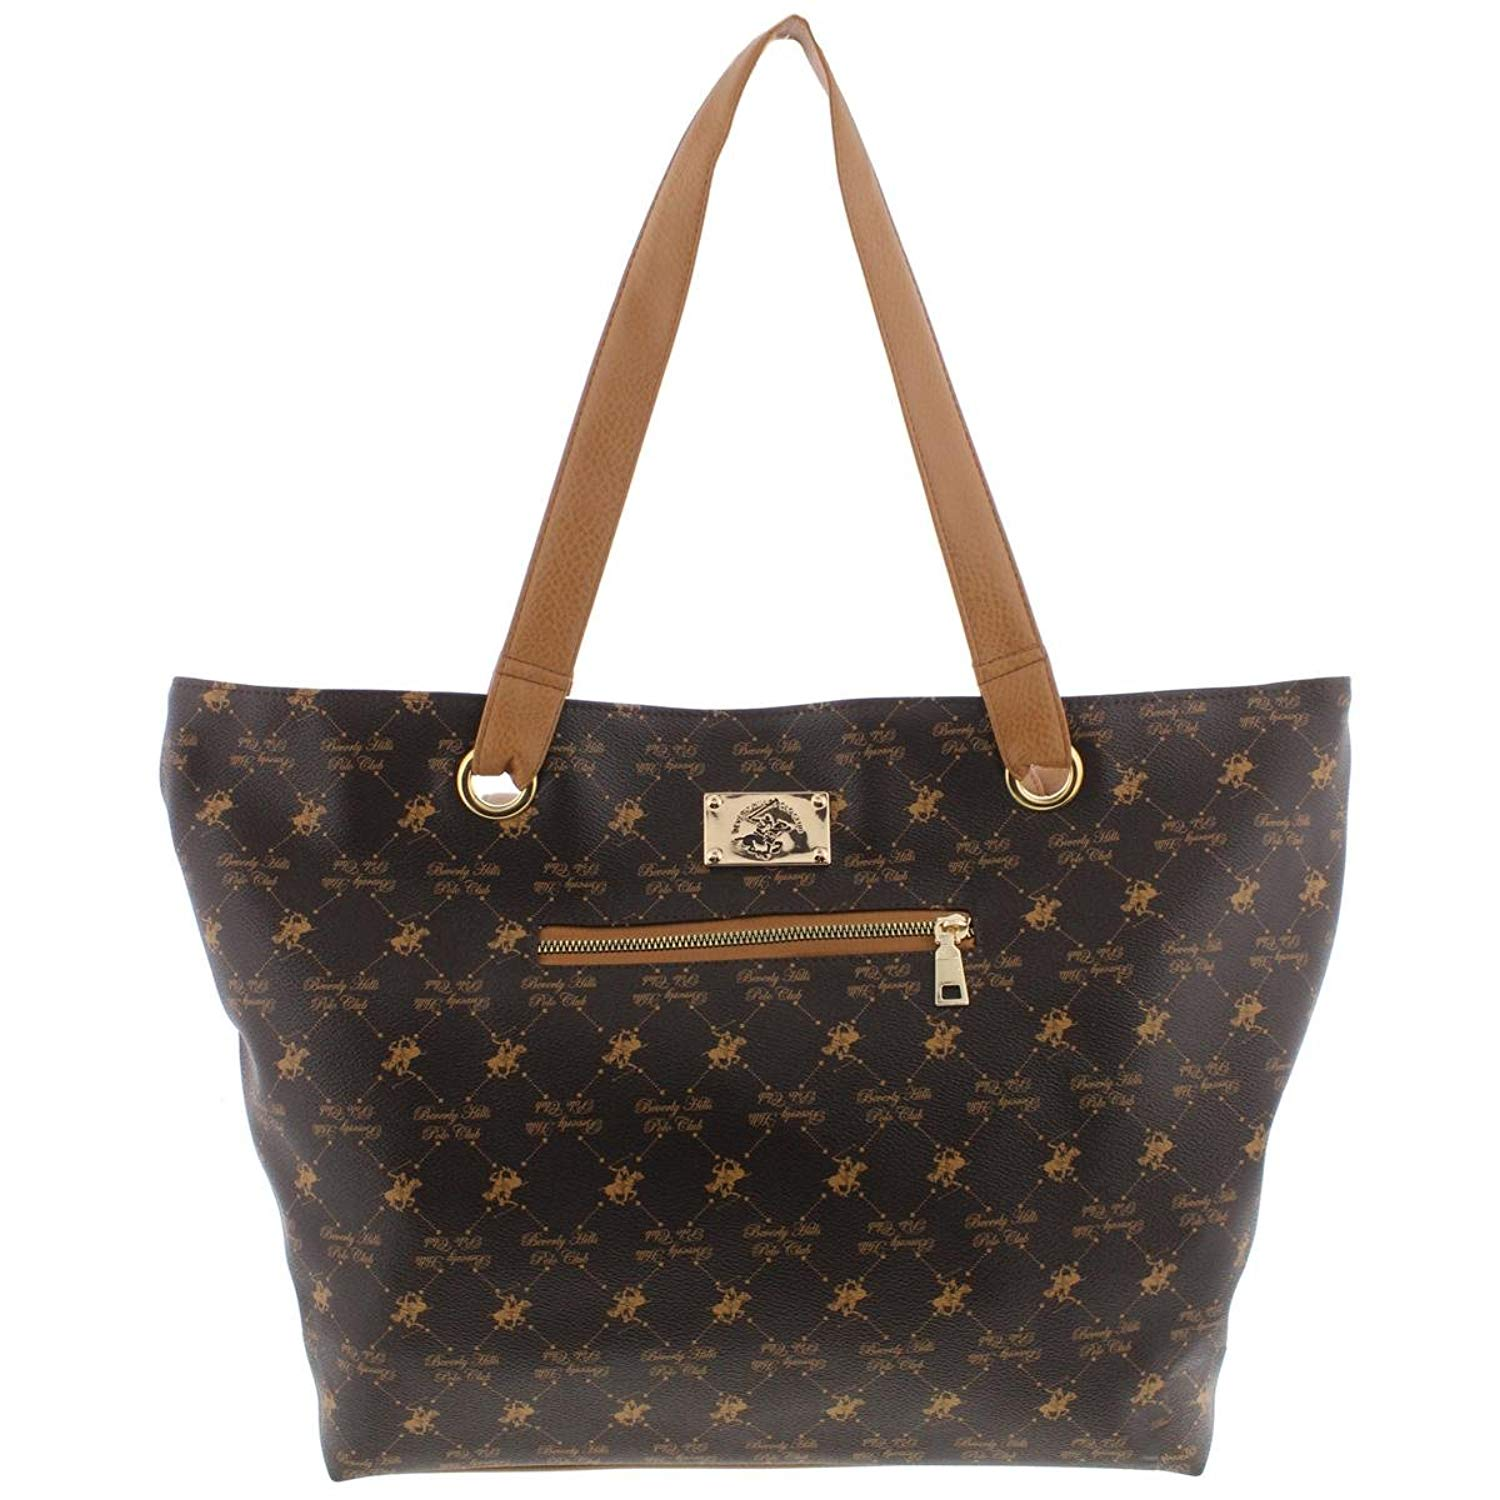 44daea1a4a00 Get Quotations · Beverly Hills Polo Club Womens Printed Faux Leather Tote  Handbag